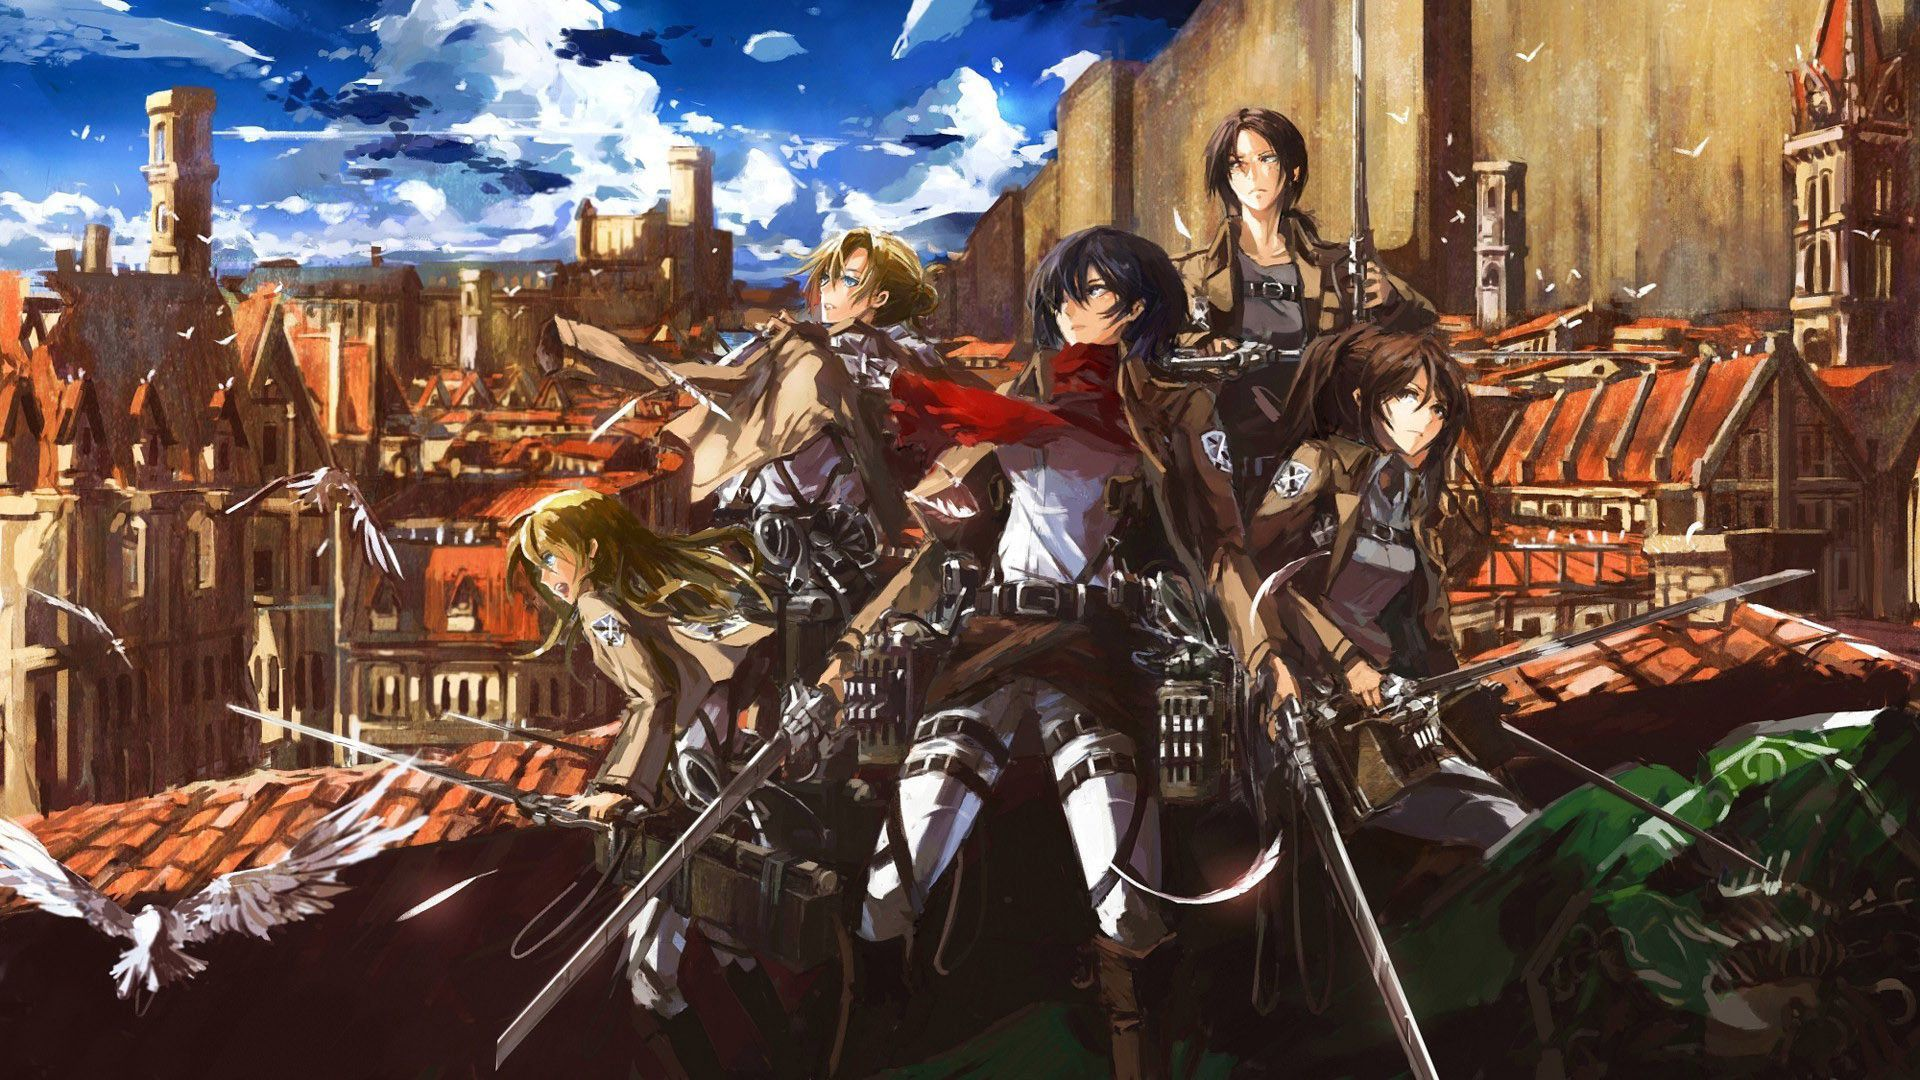 Hajime isayama, kodansha/''attack on titan'' production committee attack on titan has taken the anime world by storm. Attack On Titan Characters Wallpapers - Top Free Attack On ...